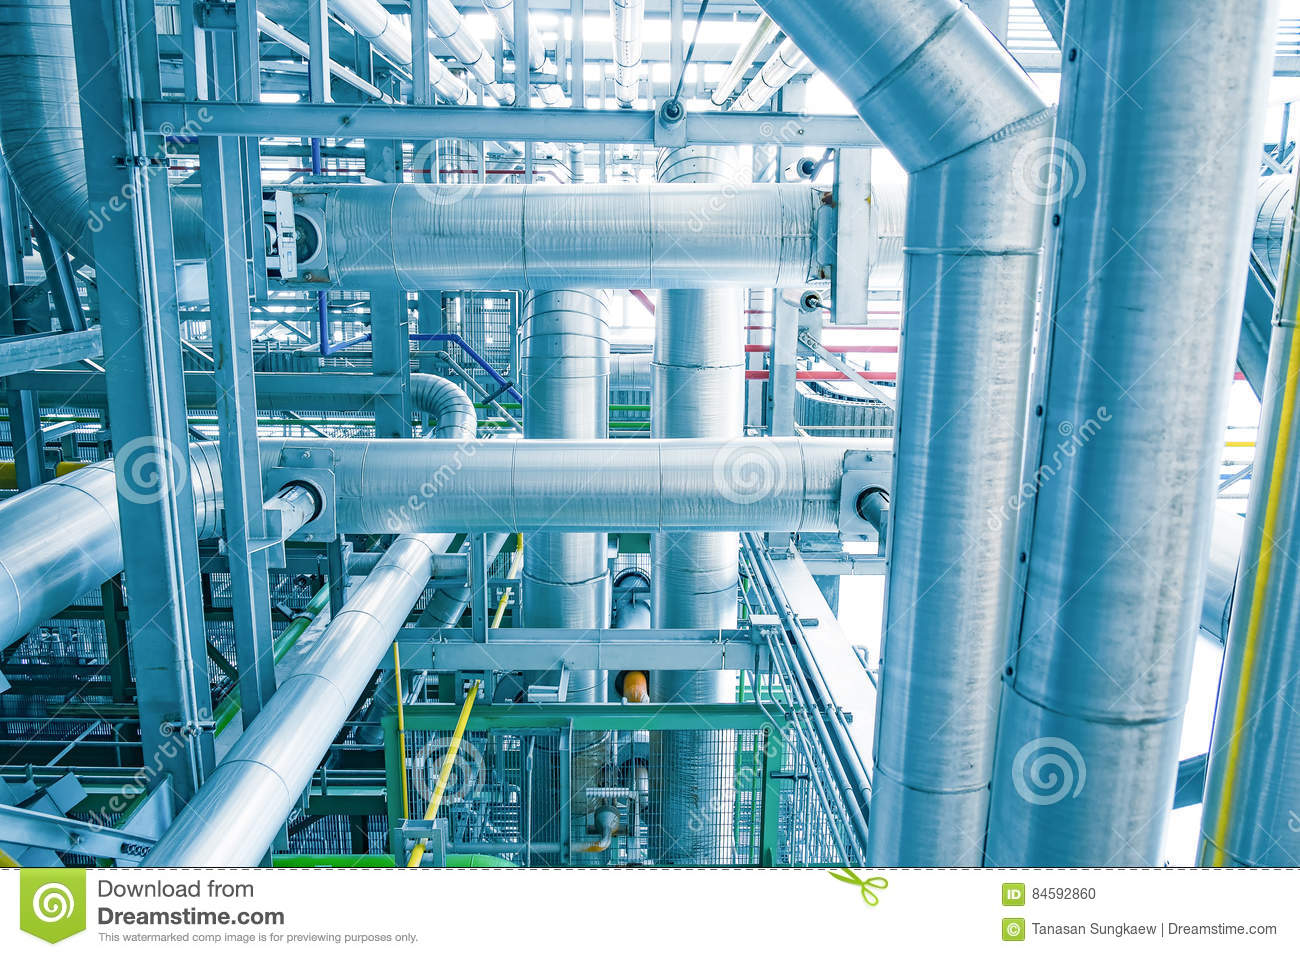 Steam Piping With Thermal Insulation Stock Photo - Image of ...